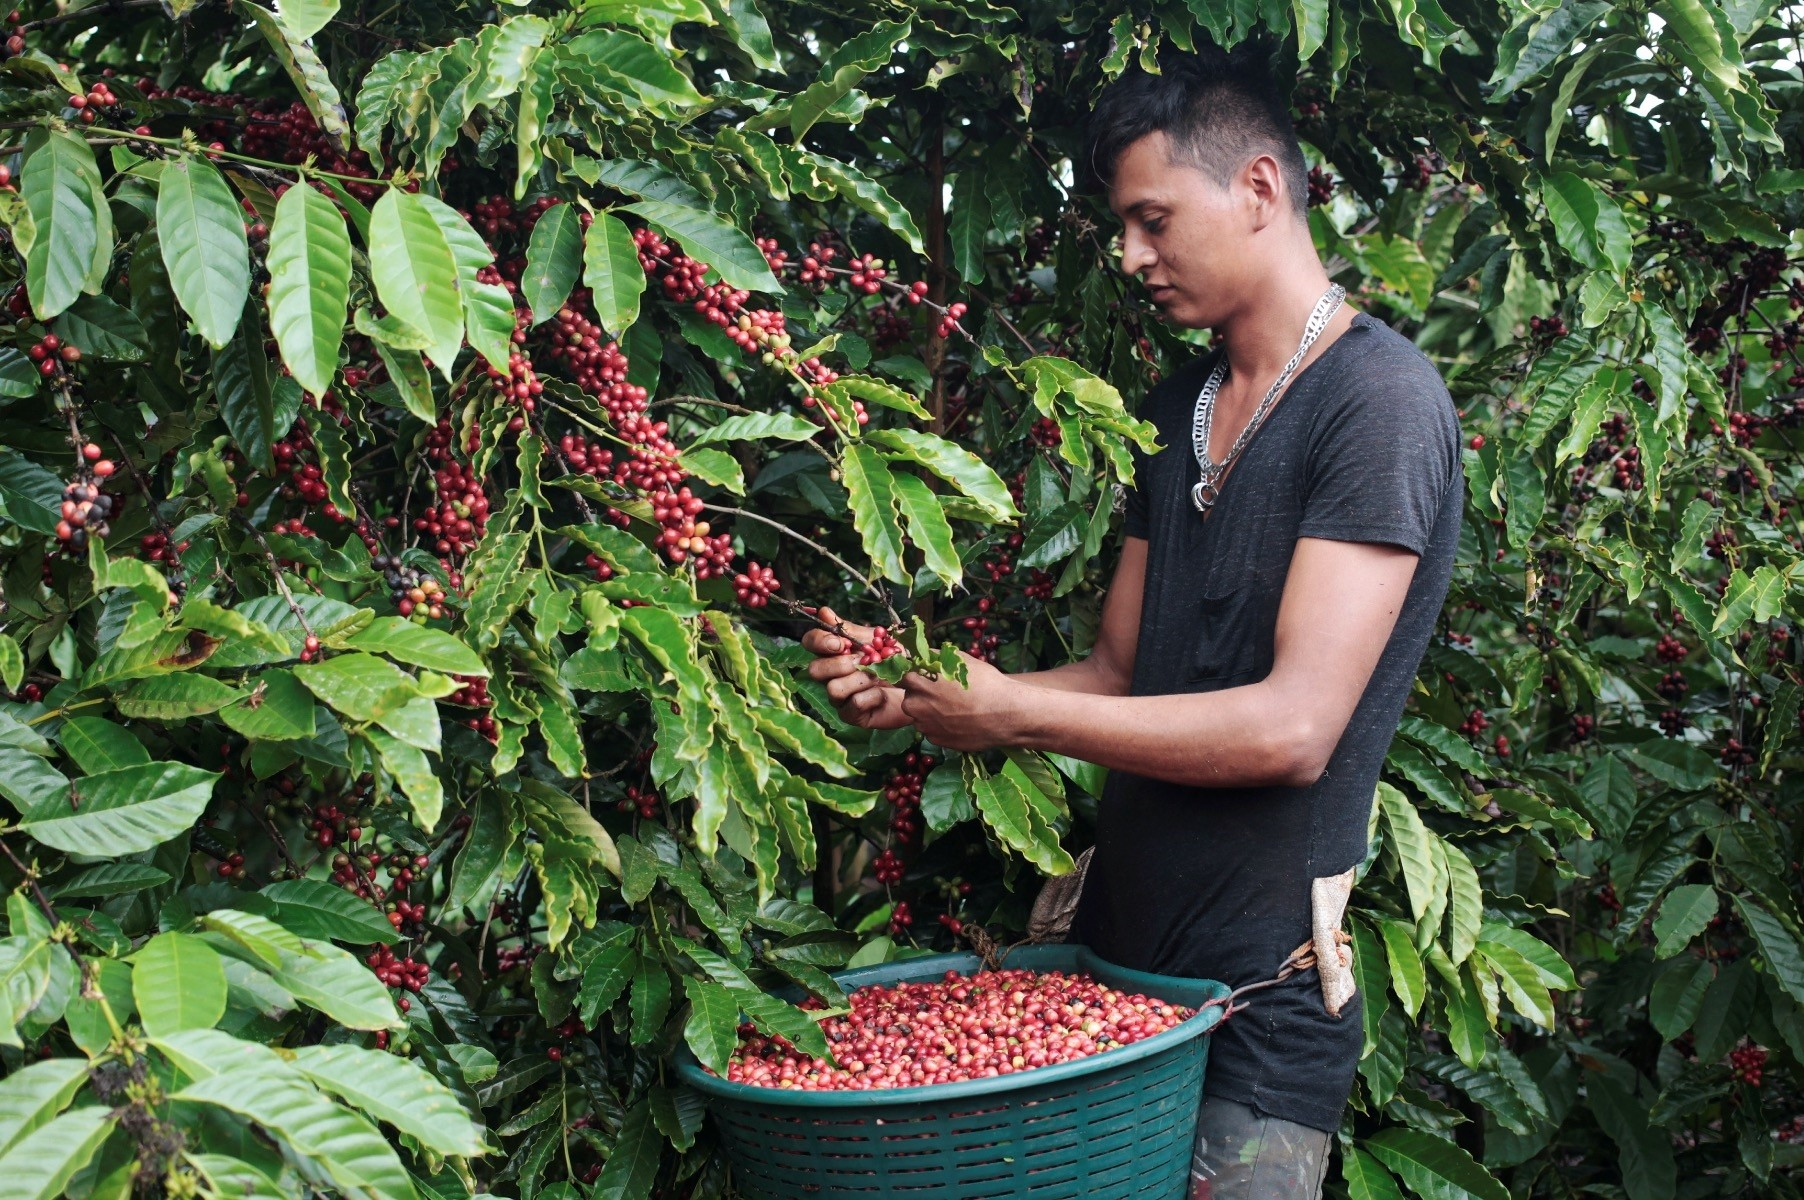 A worker harvests robusta coffee fruits at a plantation in Nueva Guinea, Nicaragua.